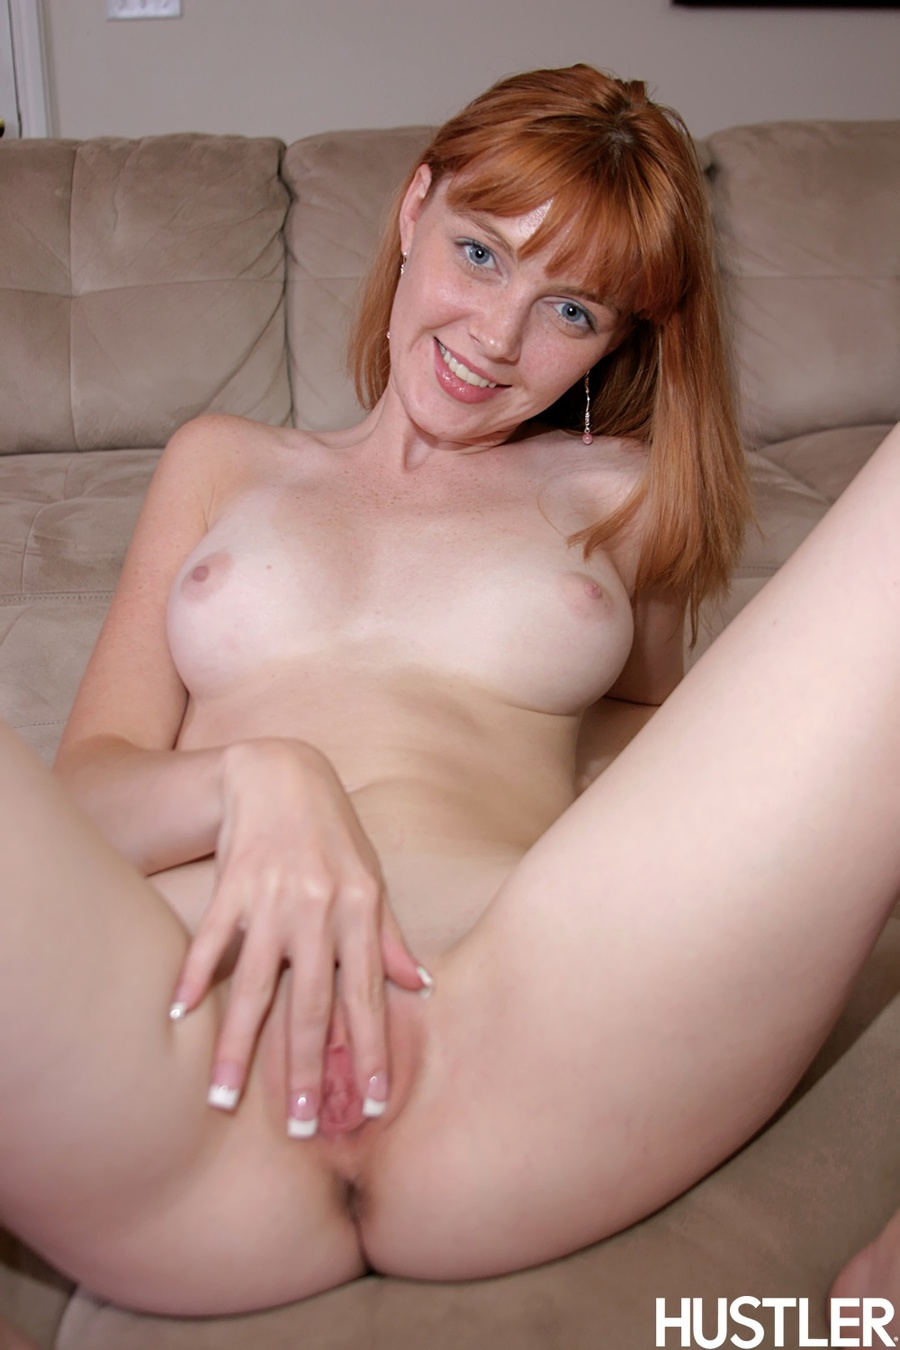 Naughty naked ginger girls